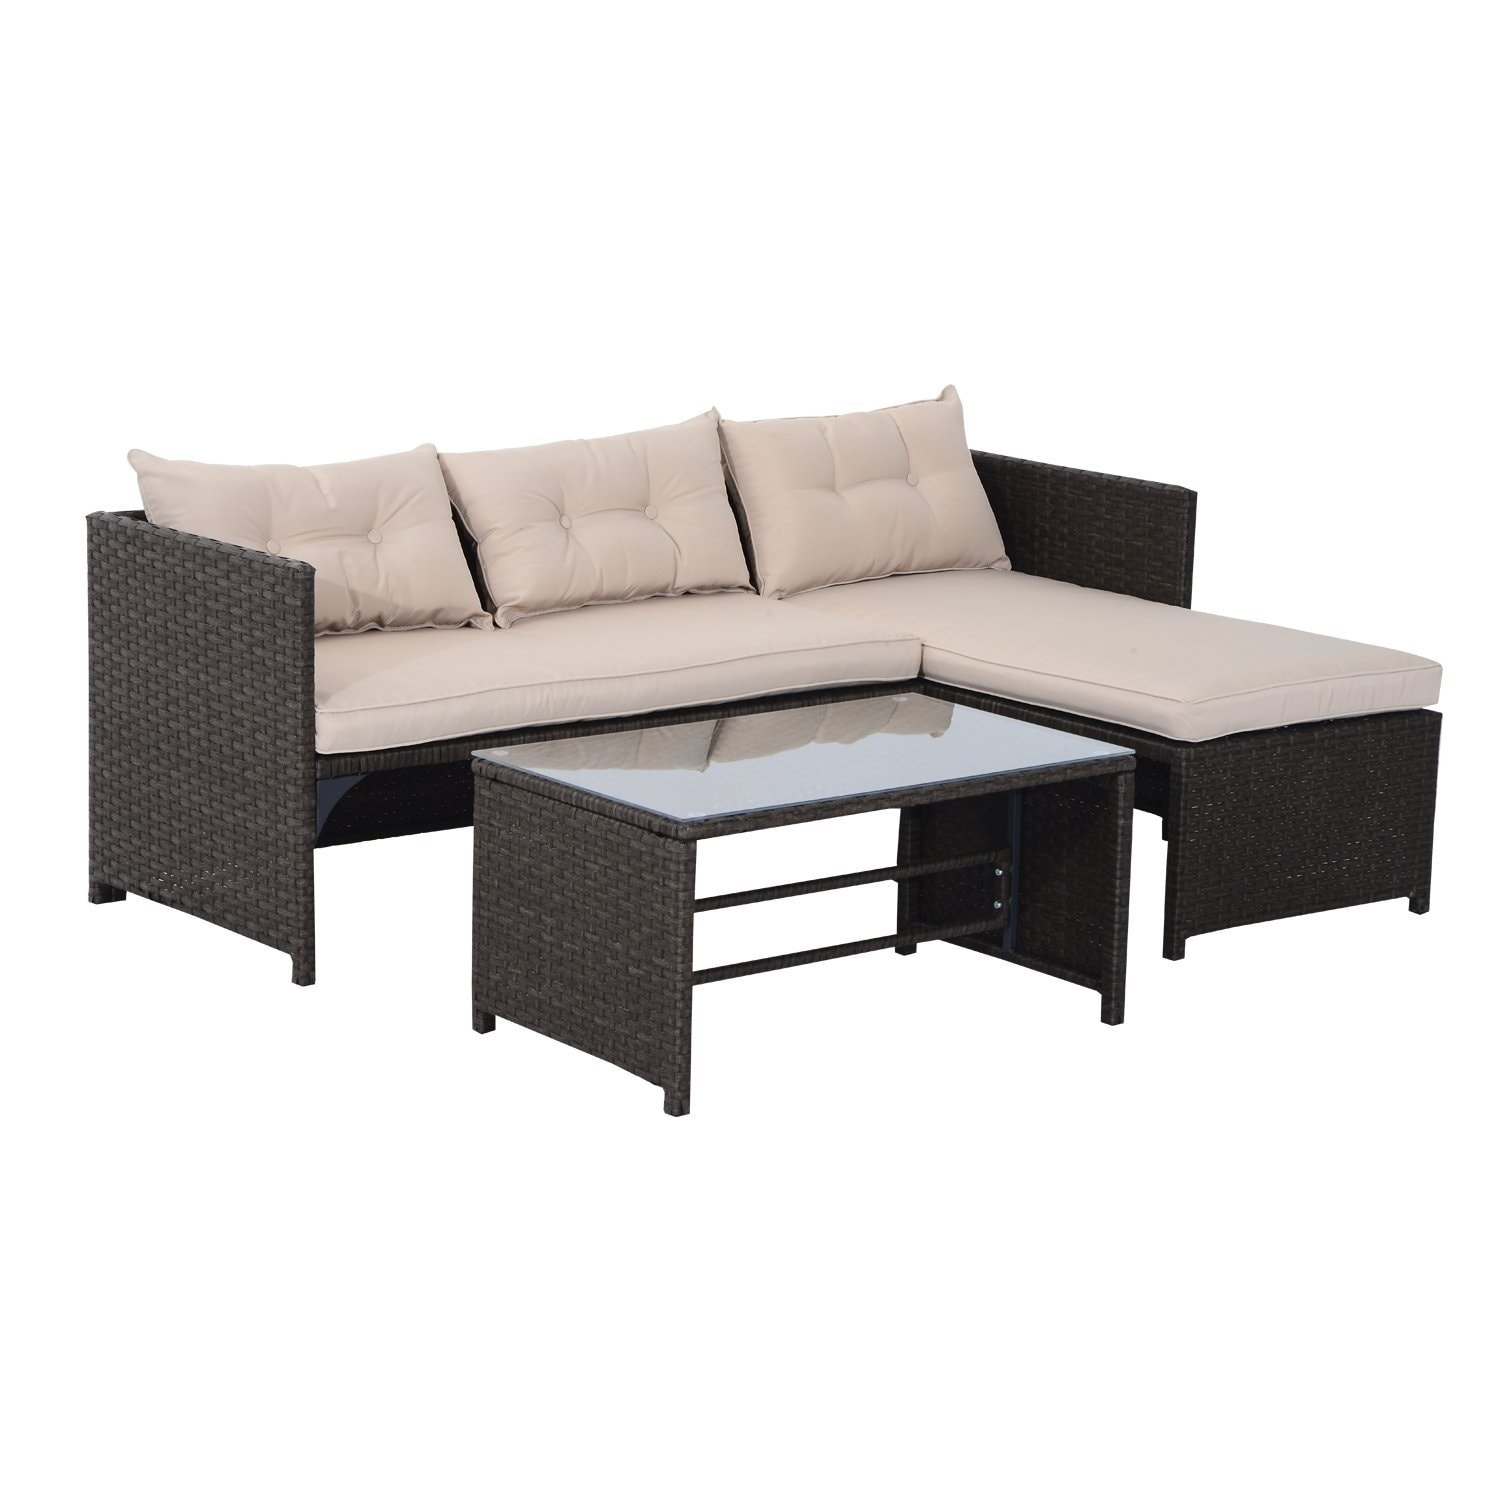 Outdoor Sofa Rattan Outsunny Brown Tan Rattan Wicker 3 Piece Outdoor Patio Sofa And Chaise Lounge Set